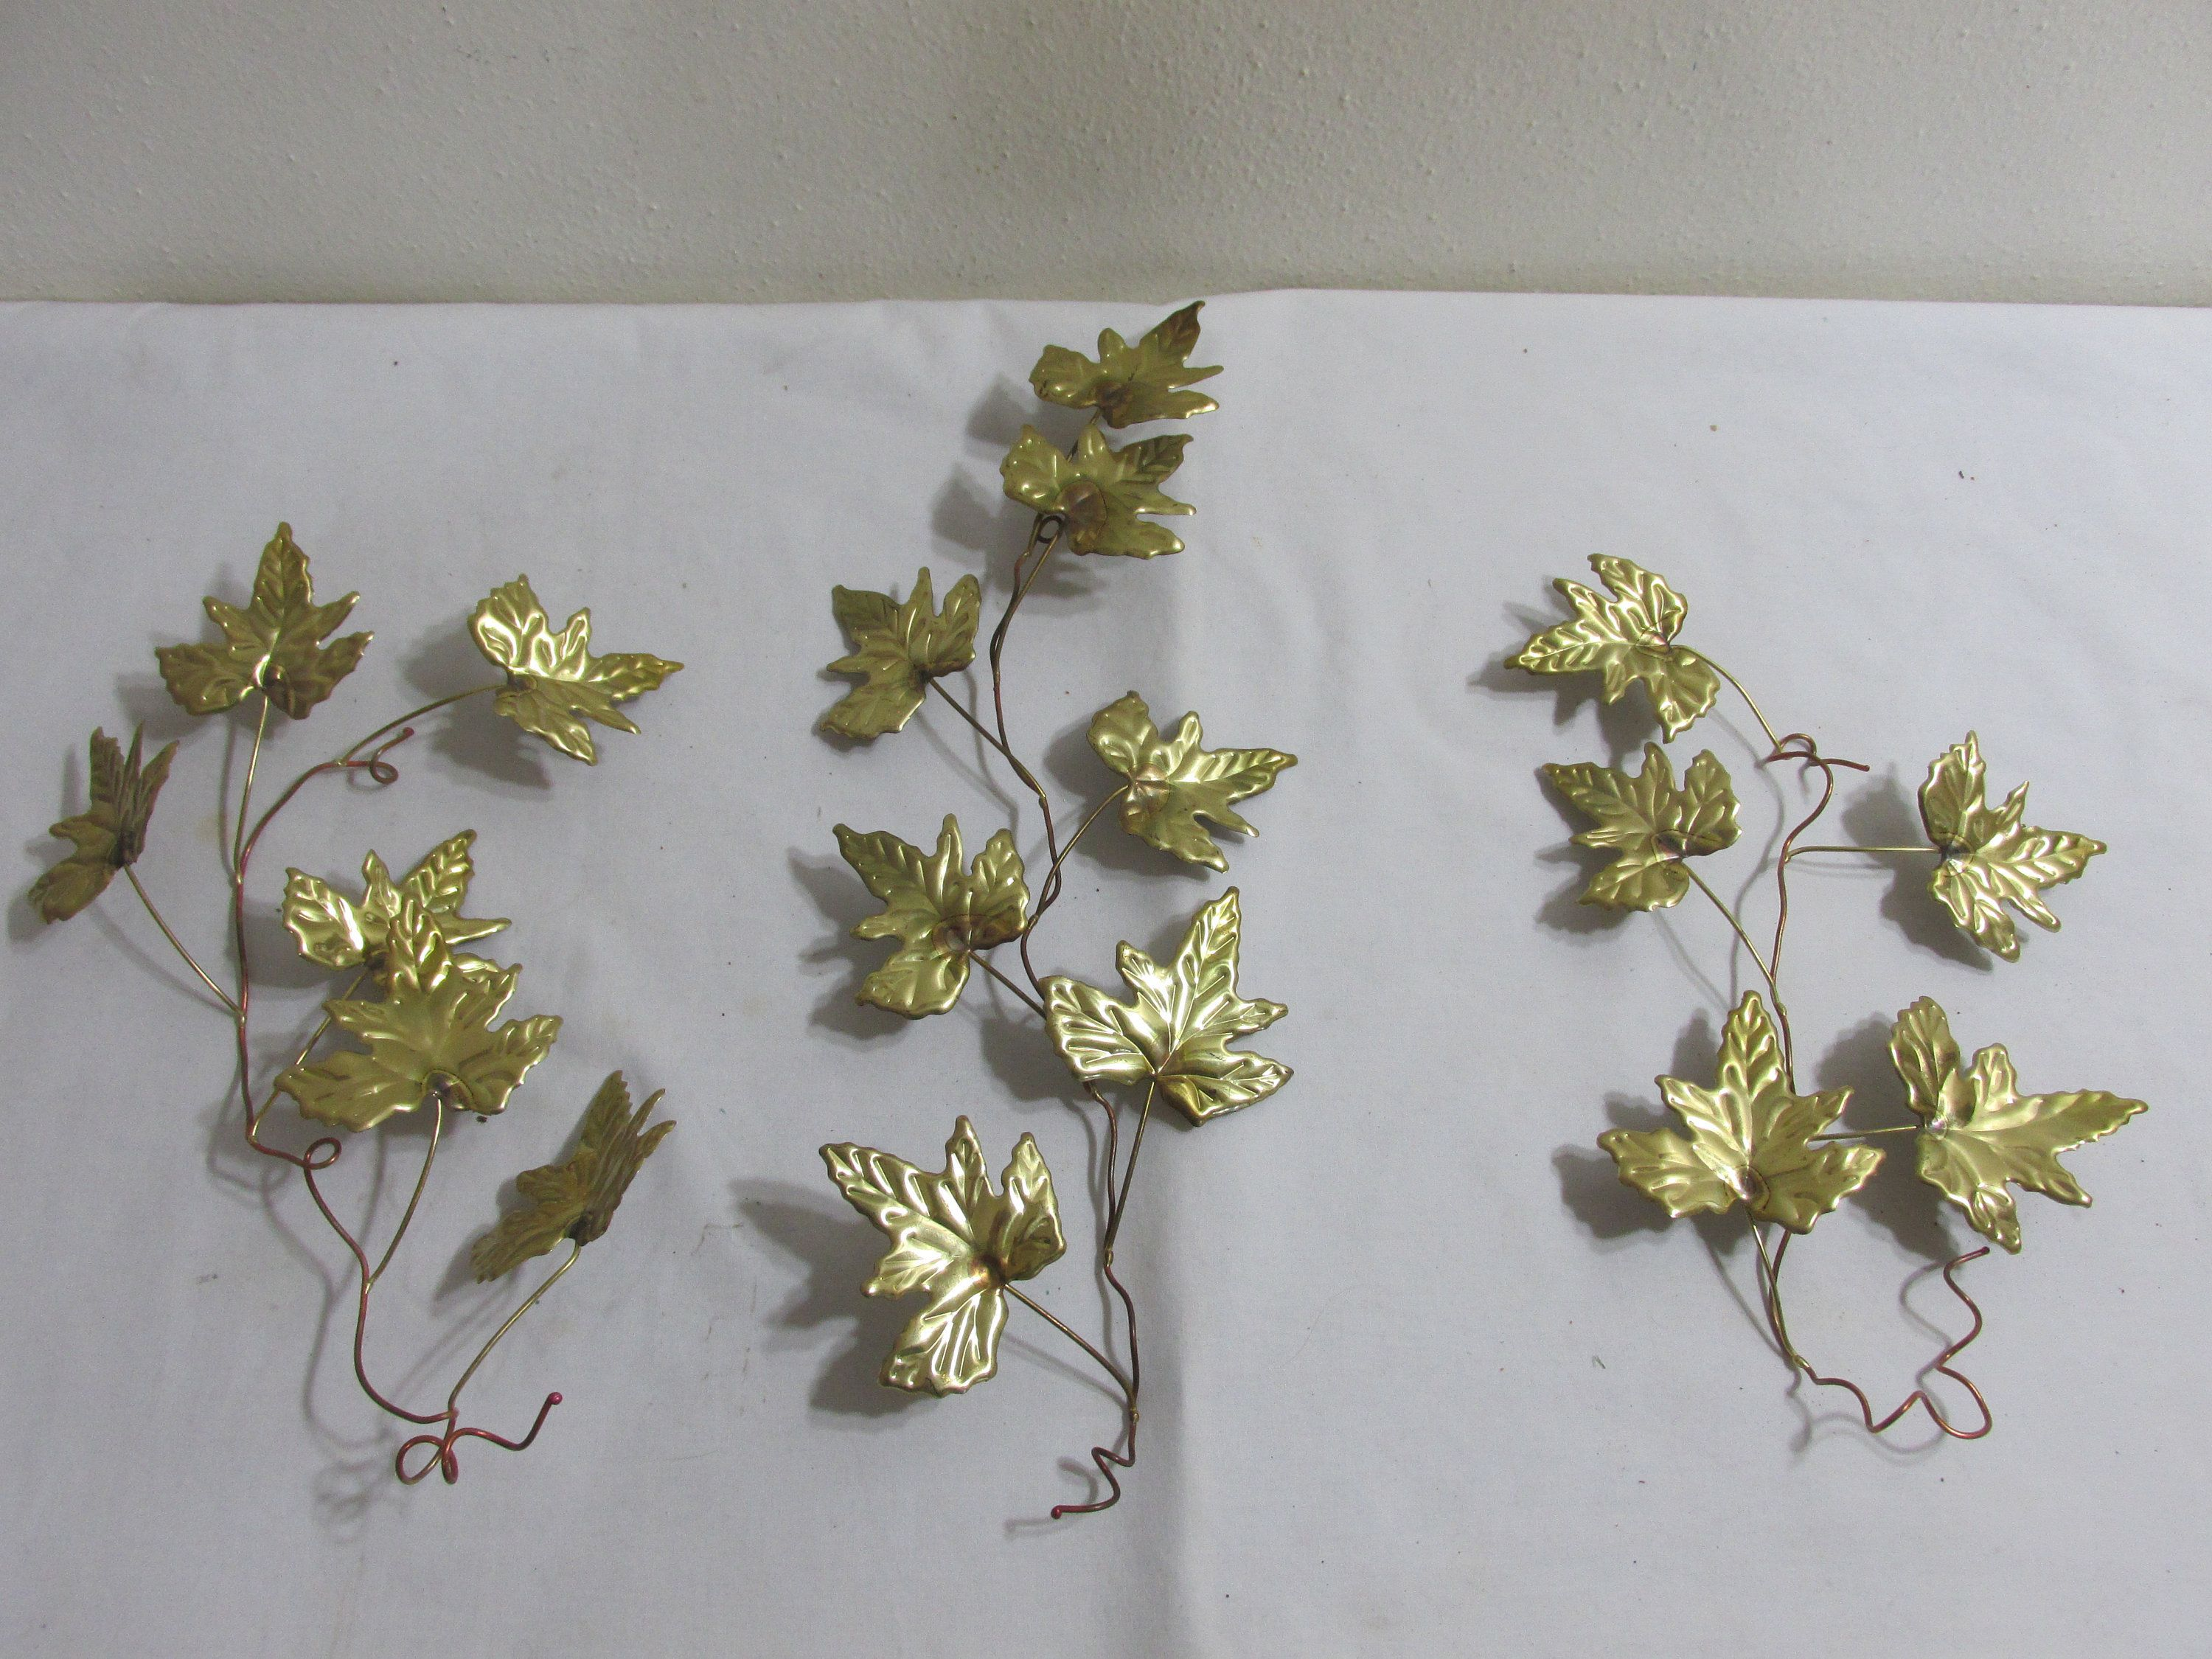 6cd0704592 Metal Leaf Stem Wall Decor Vintage Gold Tone Set of 3 by LuRuUniques on Etsy